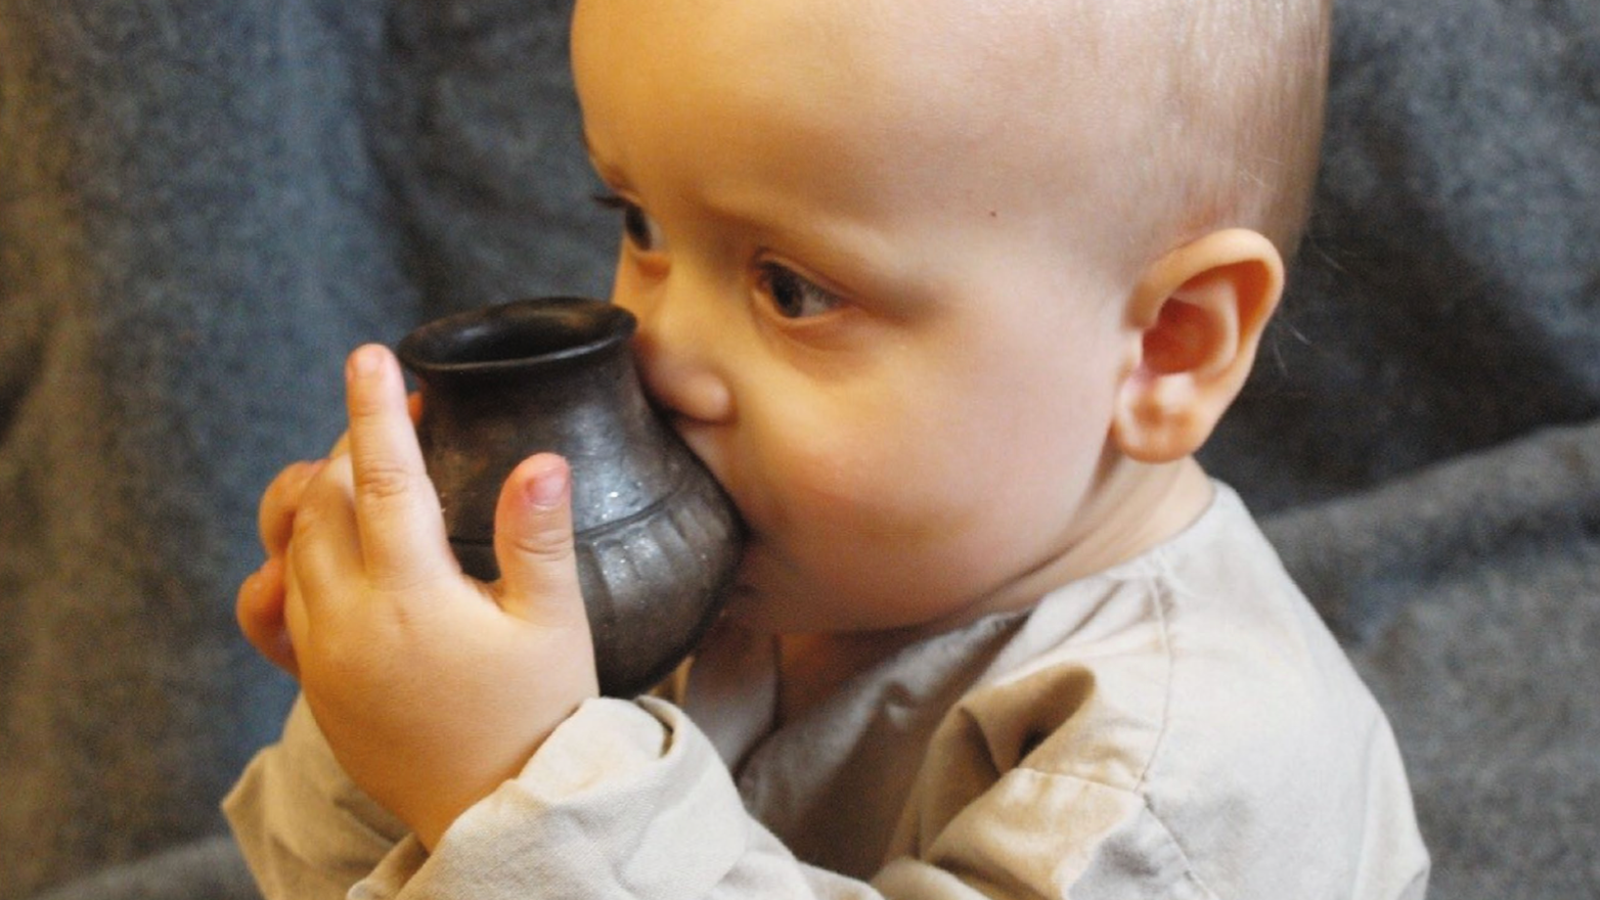 Babies in Prehistoric Europe Drank Animal Milk From Ceramic 'Sippy Cups'